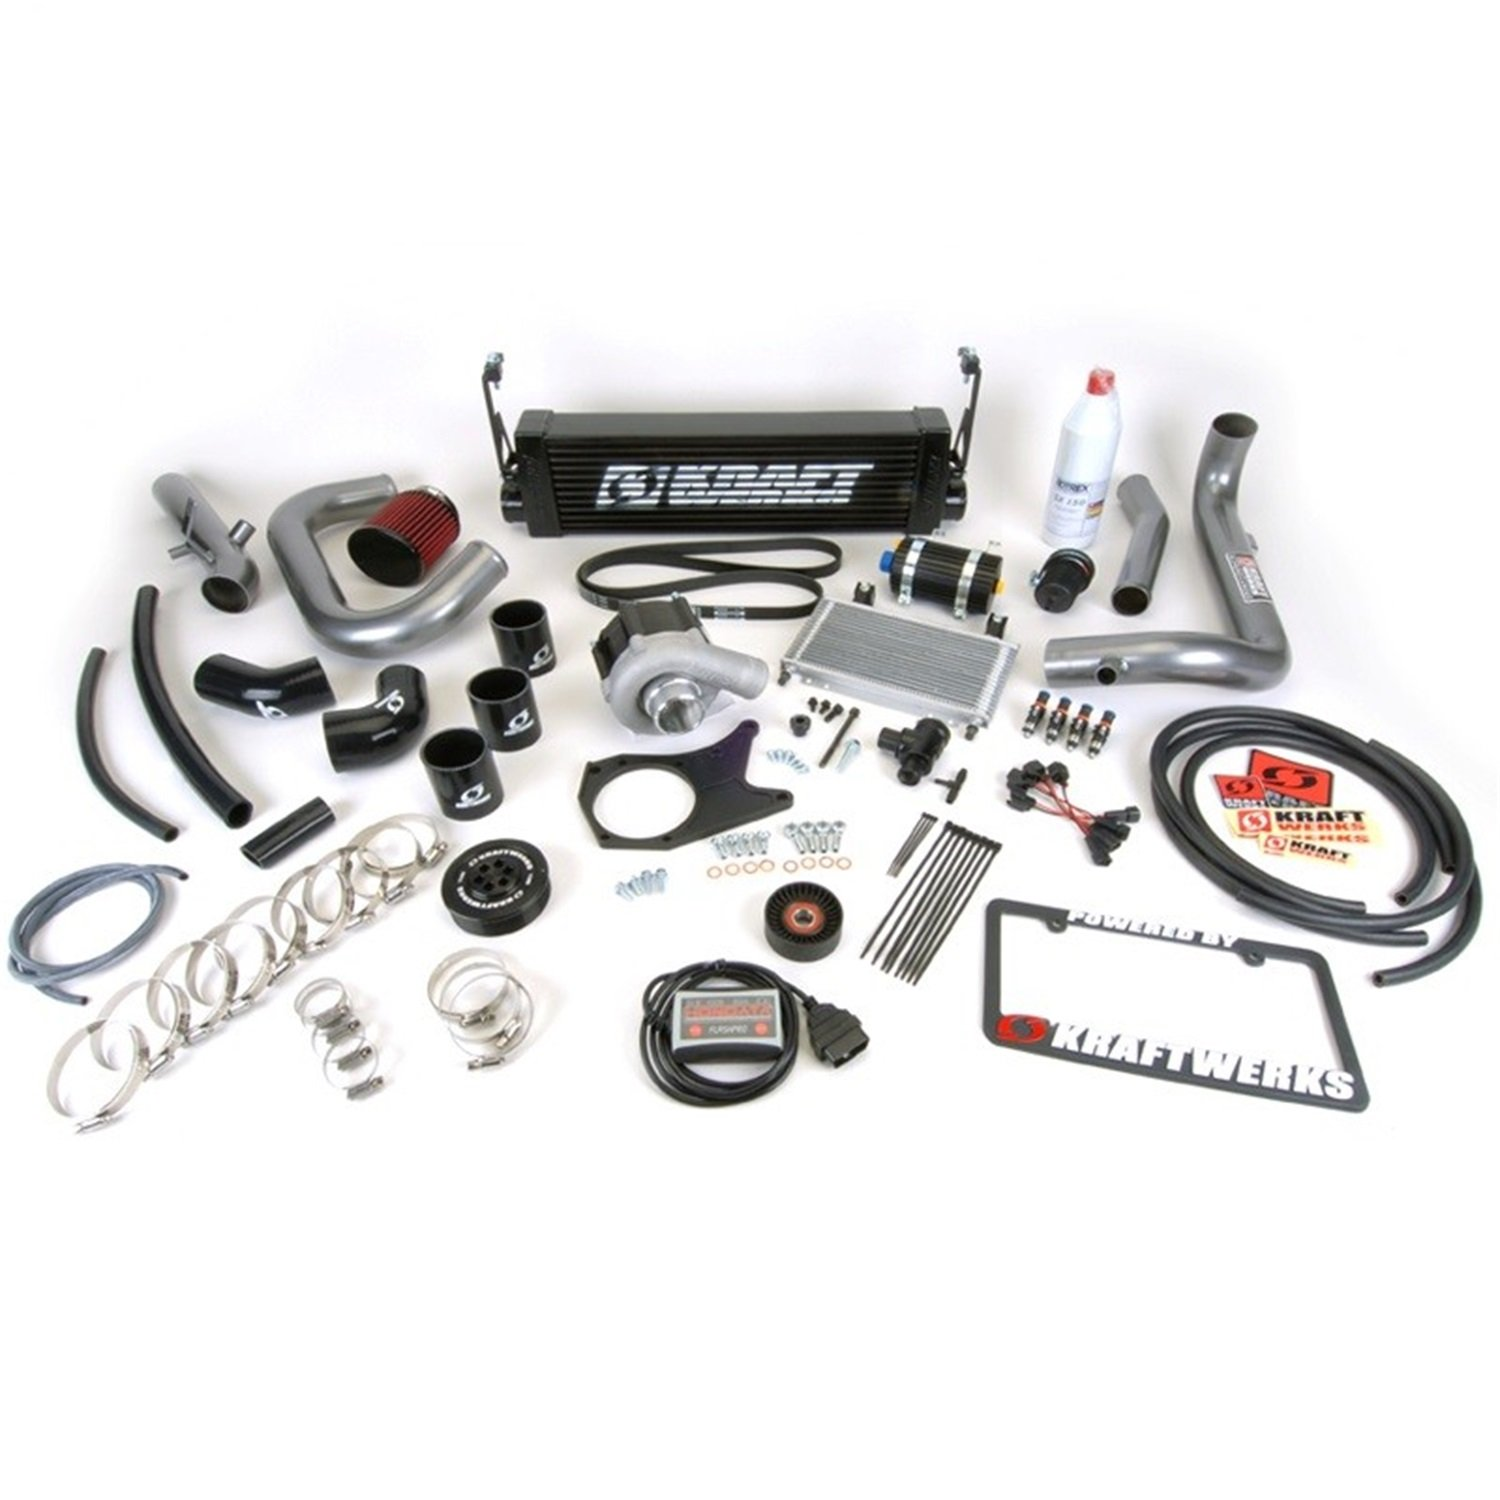 Kraftwerks 150-05-1401B Supercharger System with Tuning Black Housing